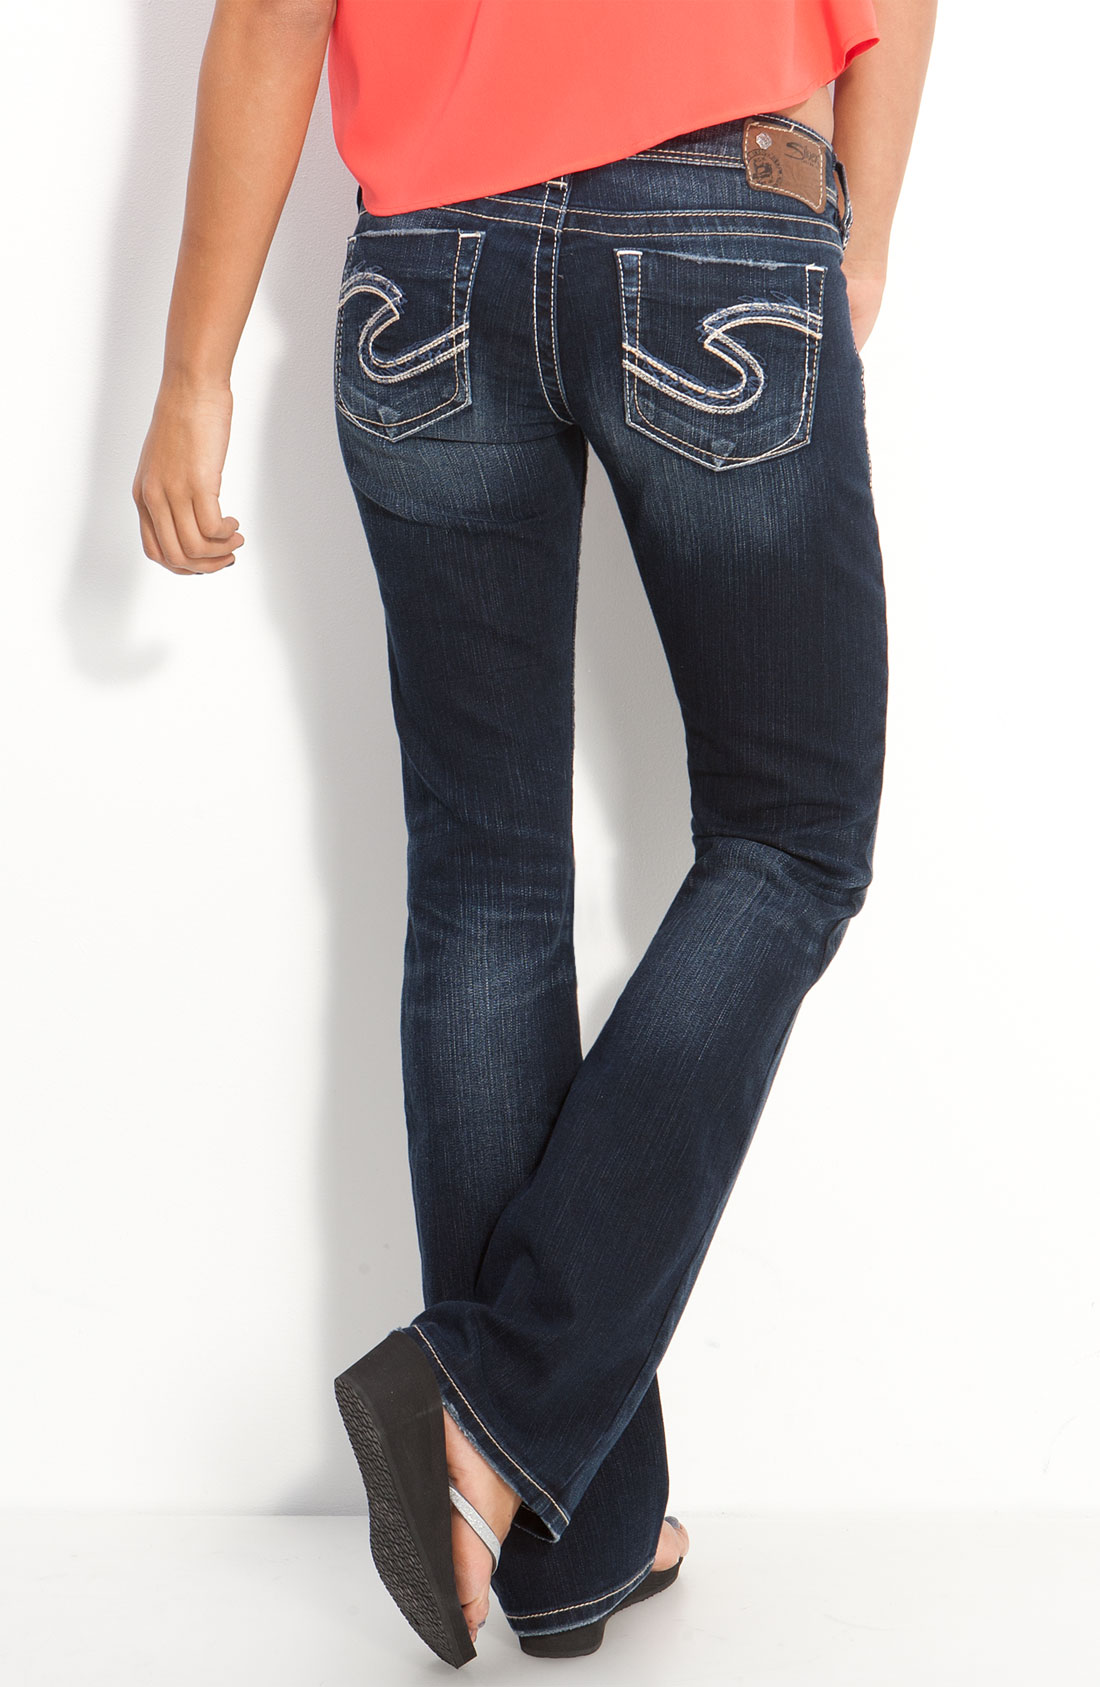 Silver Tuesday Bootcut Jeans | Jeans To